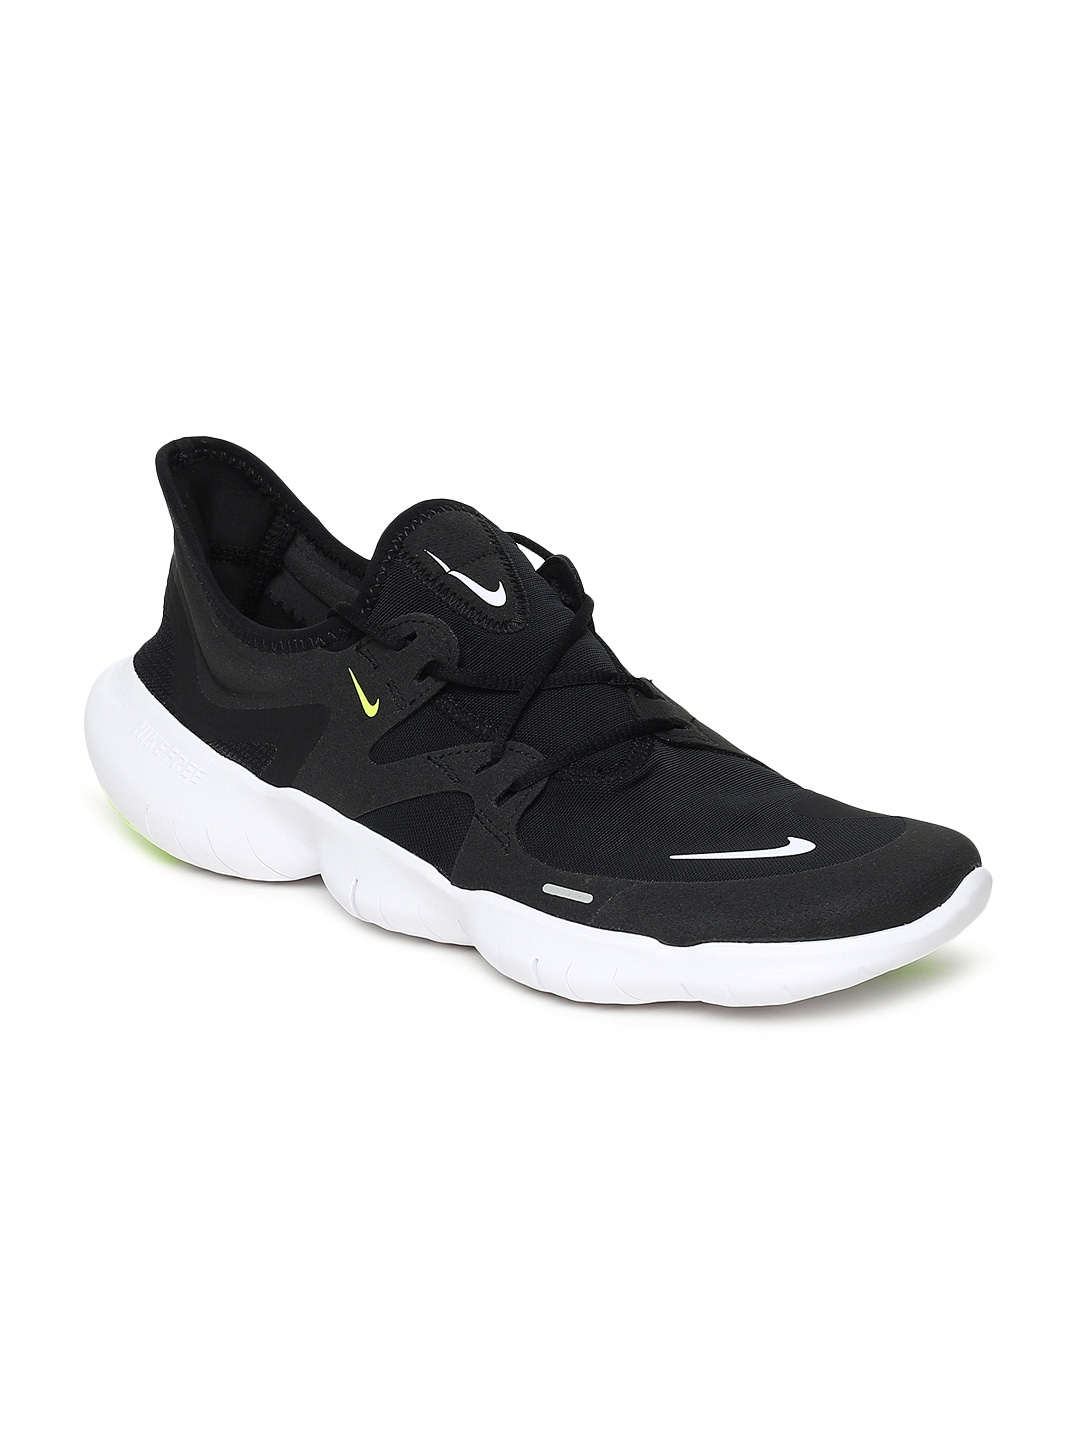 buy popular 88b7a 4e737 Nike Running Shoes - Buy Nike Running Shoes Online   Myntra